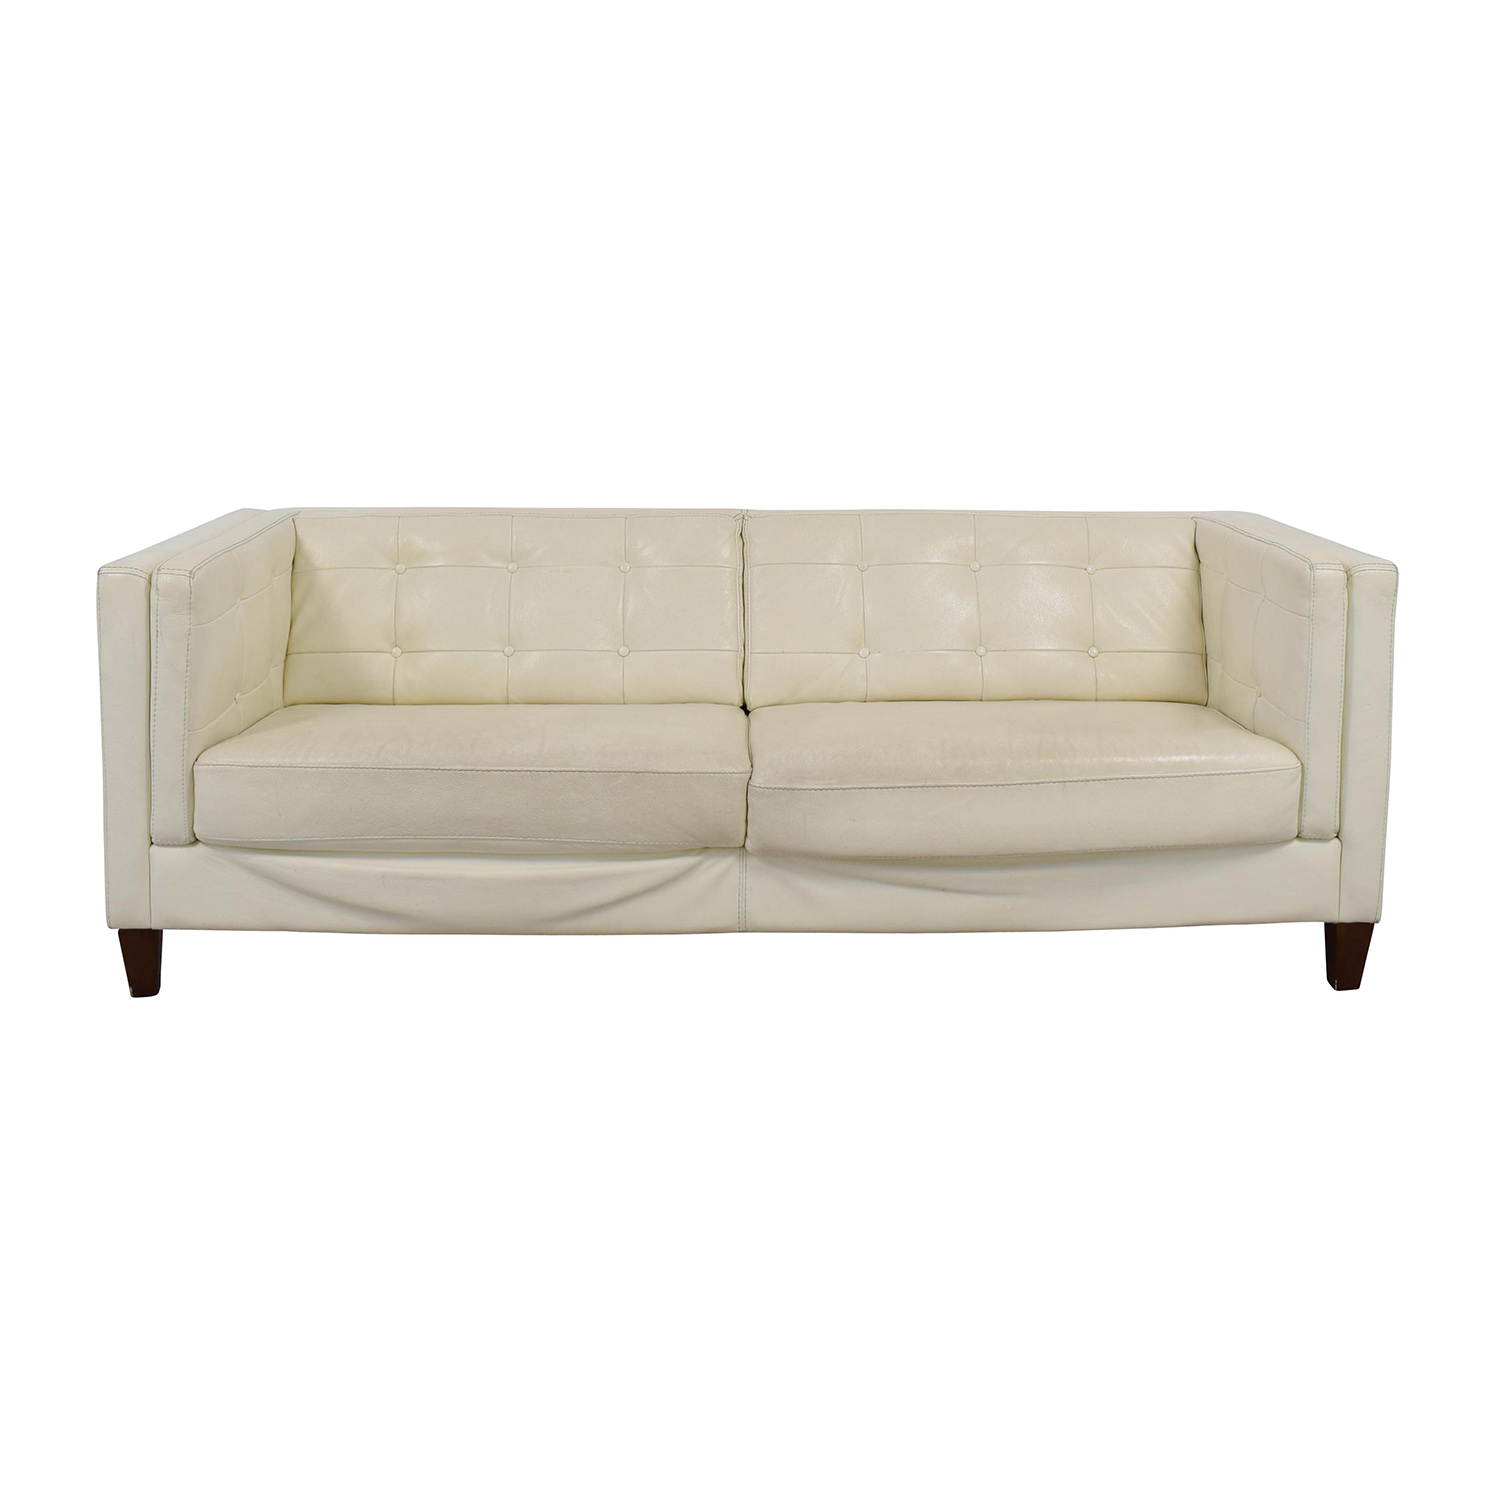 Macys Macys Tufted Pearl White Faux Leather Couch nyc